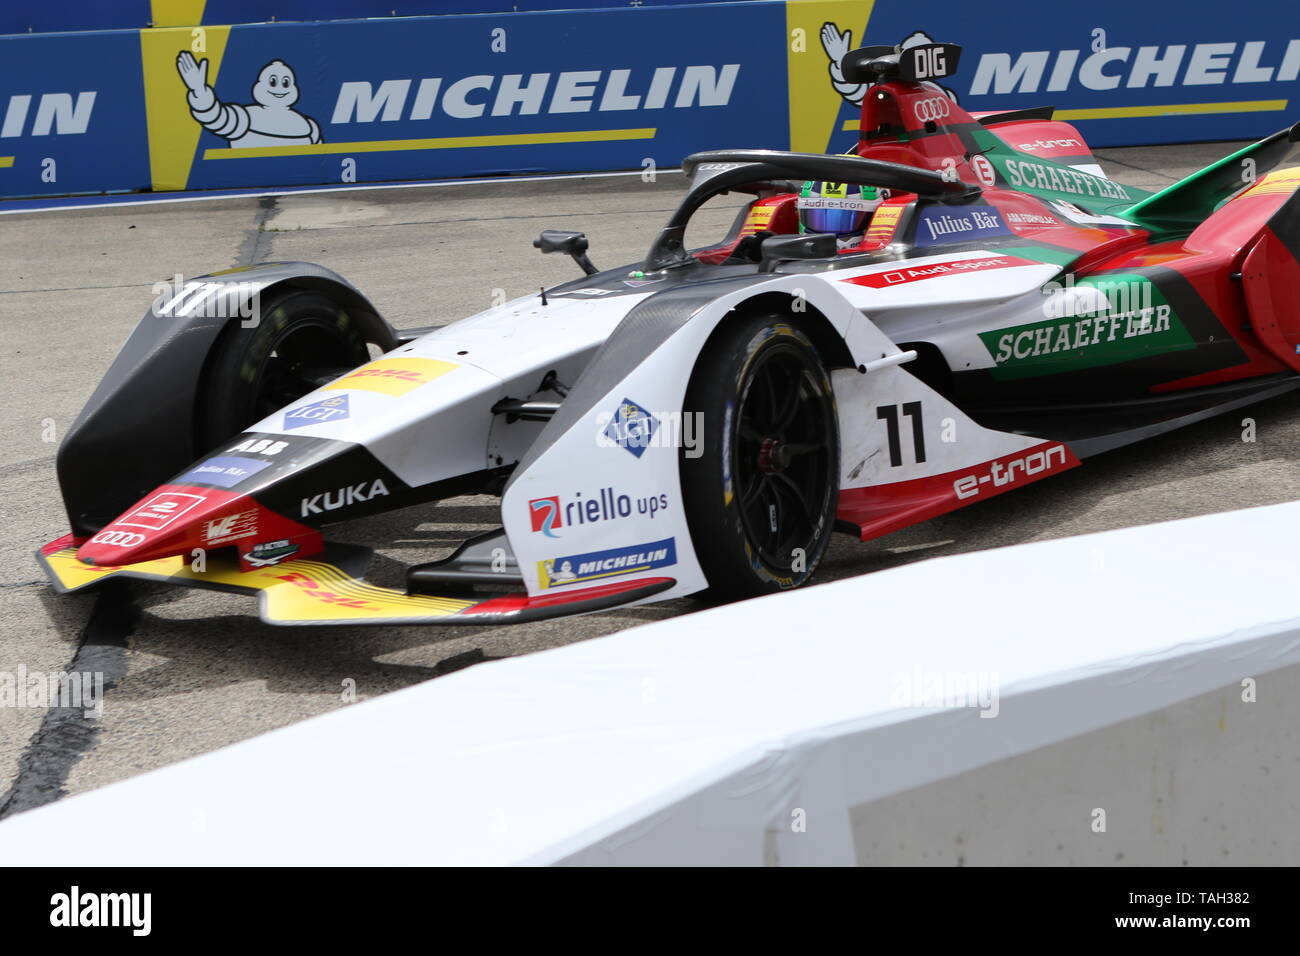 25.05.2019, Berlin, Germany. Lucas Di Grassi at the race. Lucas Di Grassi from the Audi Sport Abt Schaeffler team wins the Berlin ePrix. Sébastien Buemi from the team Nissan e.dams wins the second place and Jean-Eric Vergne from the team DS TECHEETAH wins the third place. The Formula E will be on the 25th of May 2019 for the fifth time in Berlin. The electric racing series 2018/2018 will take place at the former Tempelhof Airport. - Stock Image